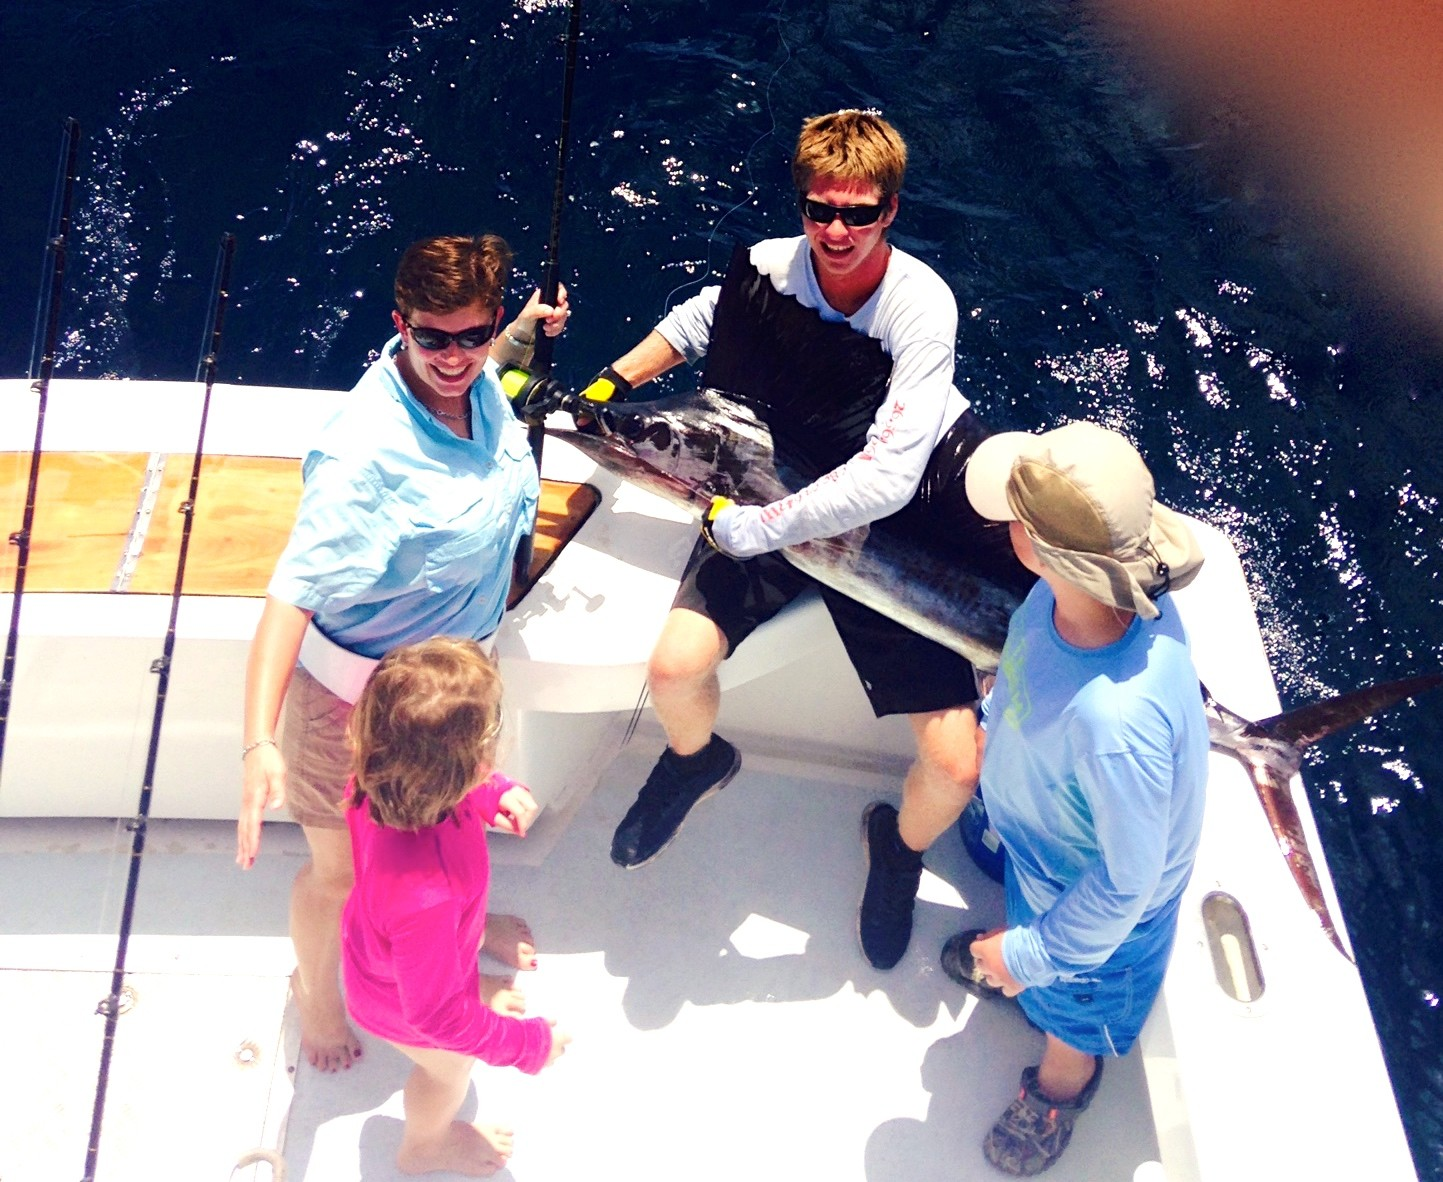 Wet N Wild Sport Fishing: 1/2 day charter